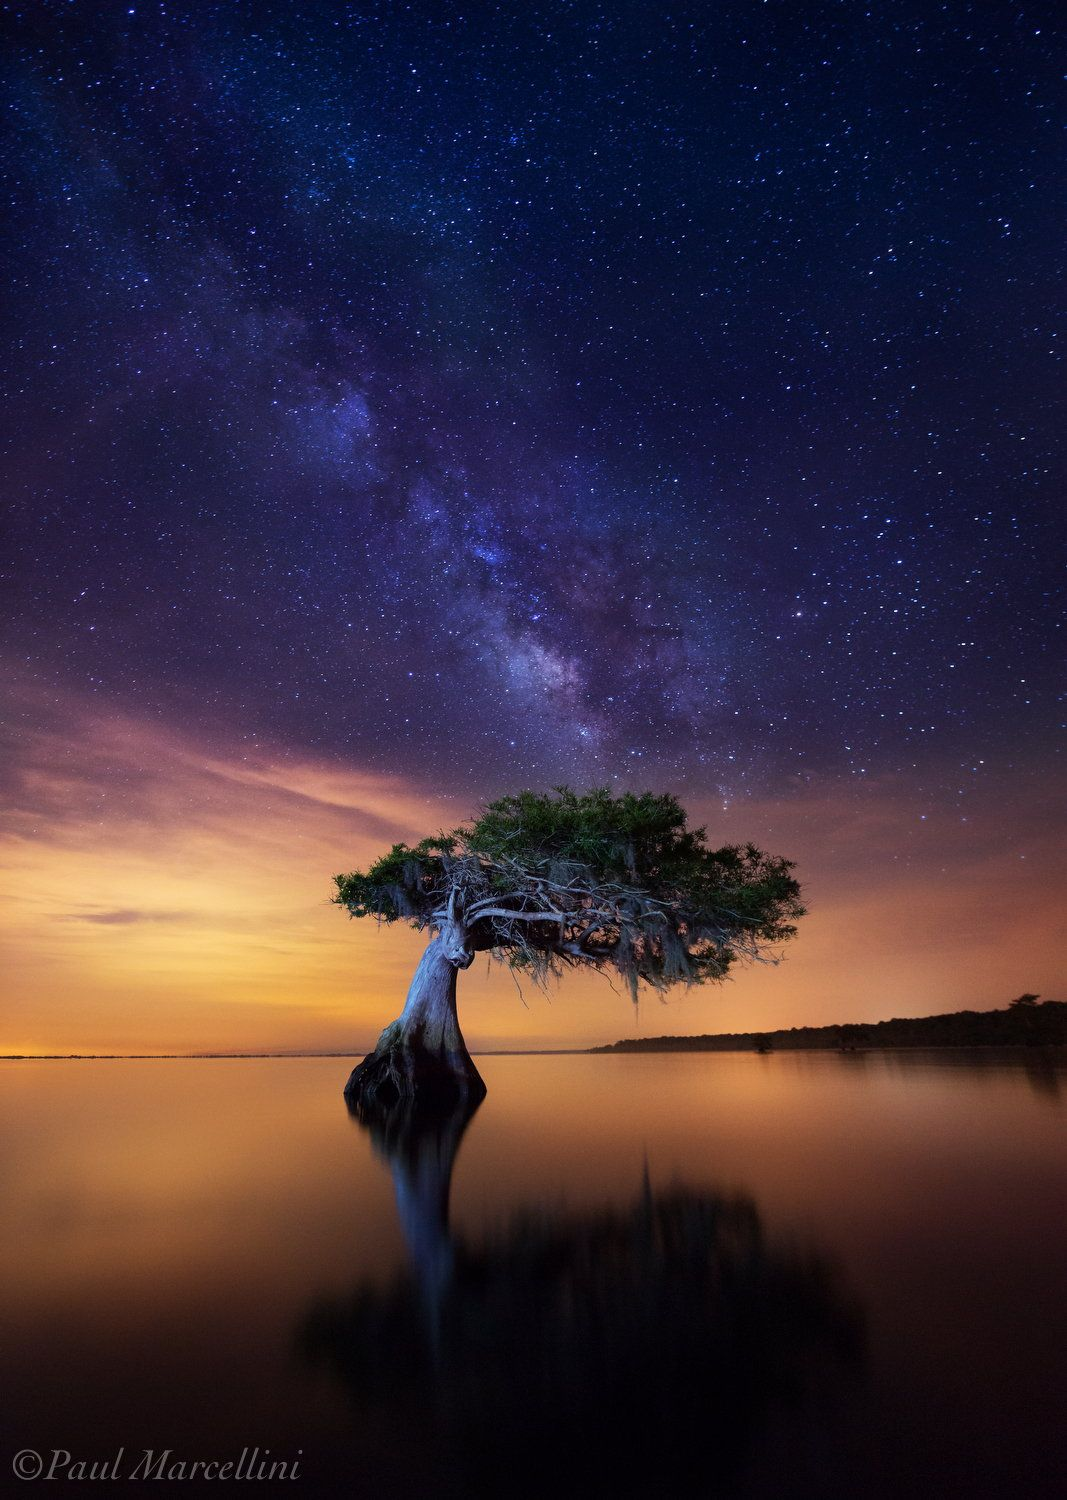 Celestial Cypress by Paul Marcellini on 500px